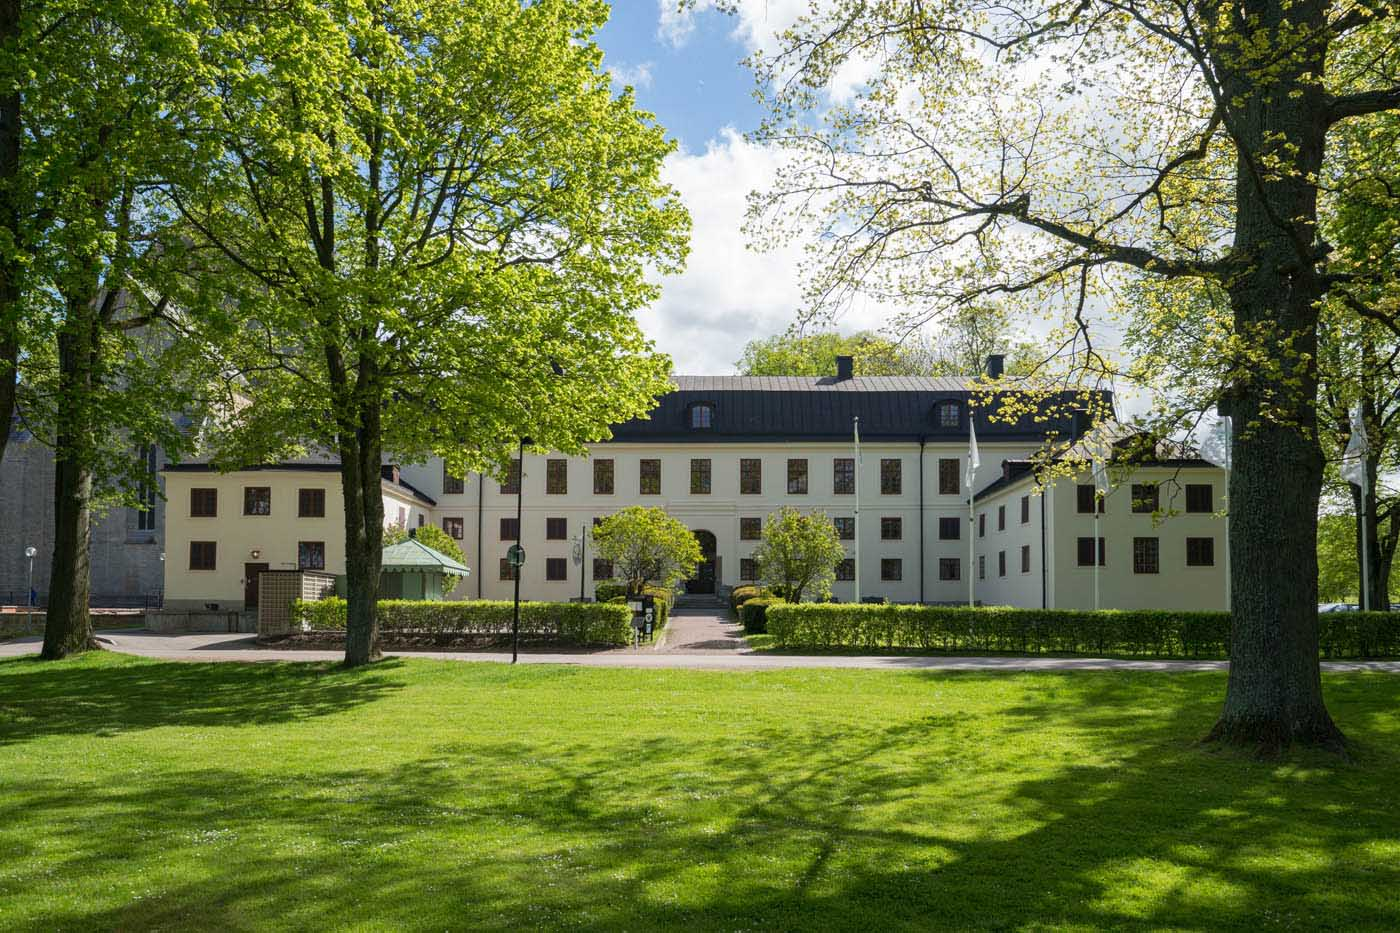 Vadstena Klosterhotel: Embrace your inner journey, Scan Magazine